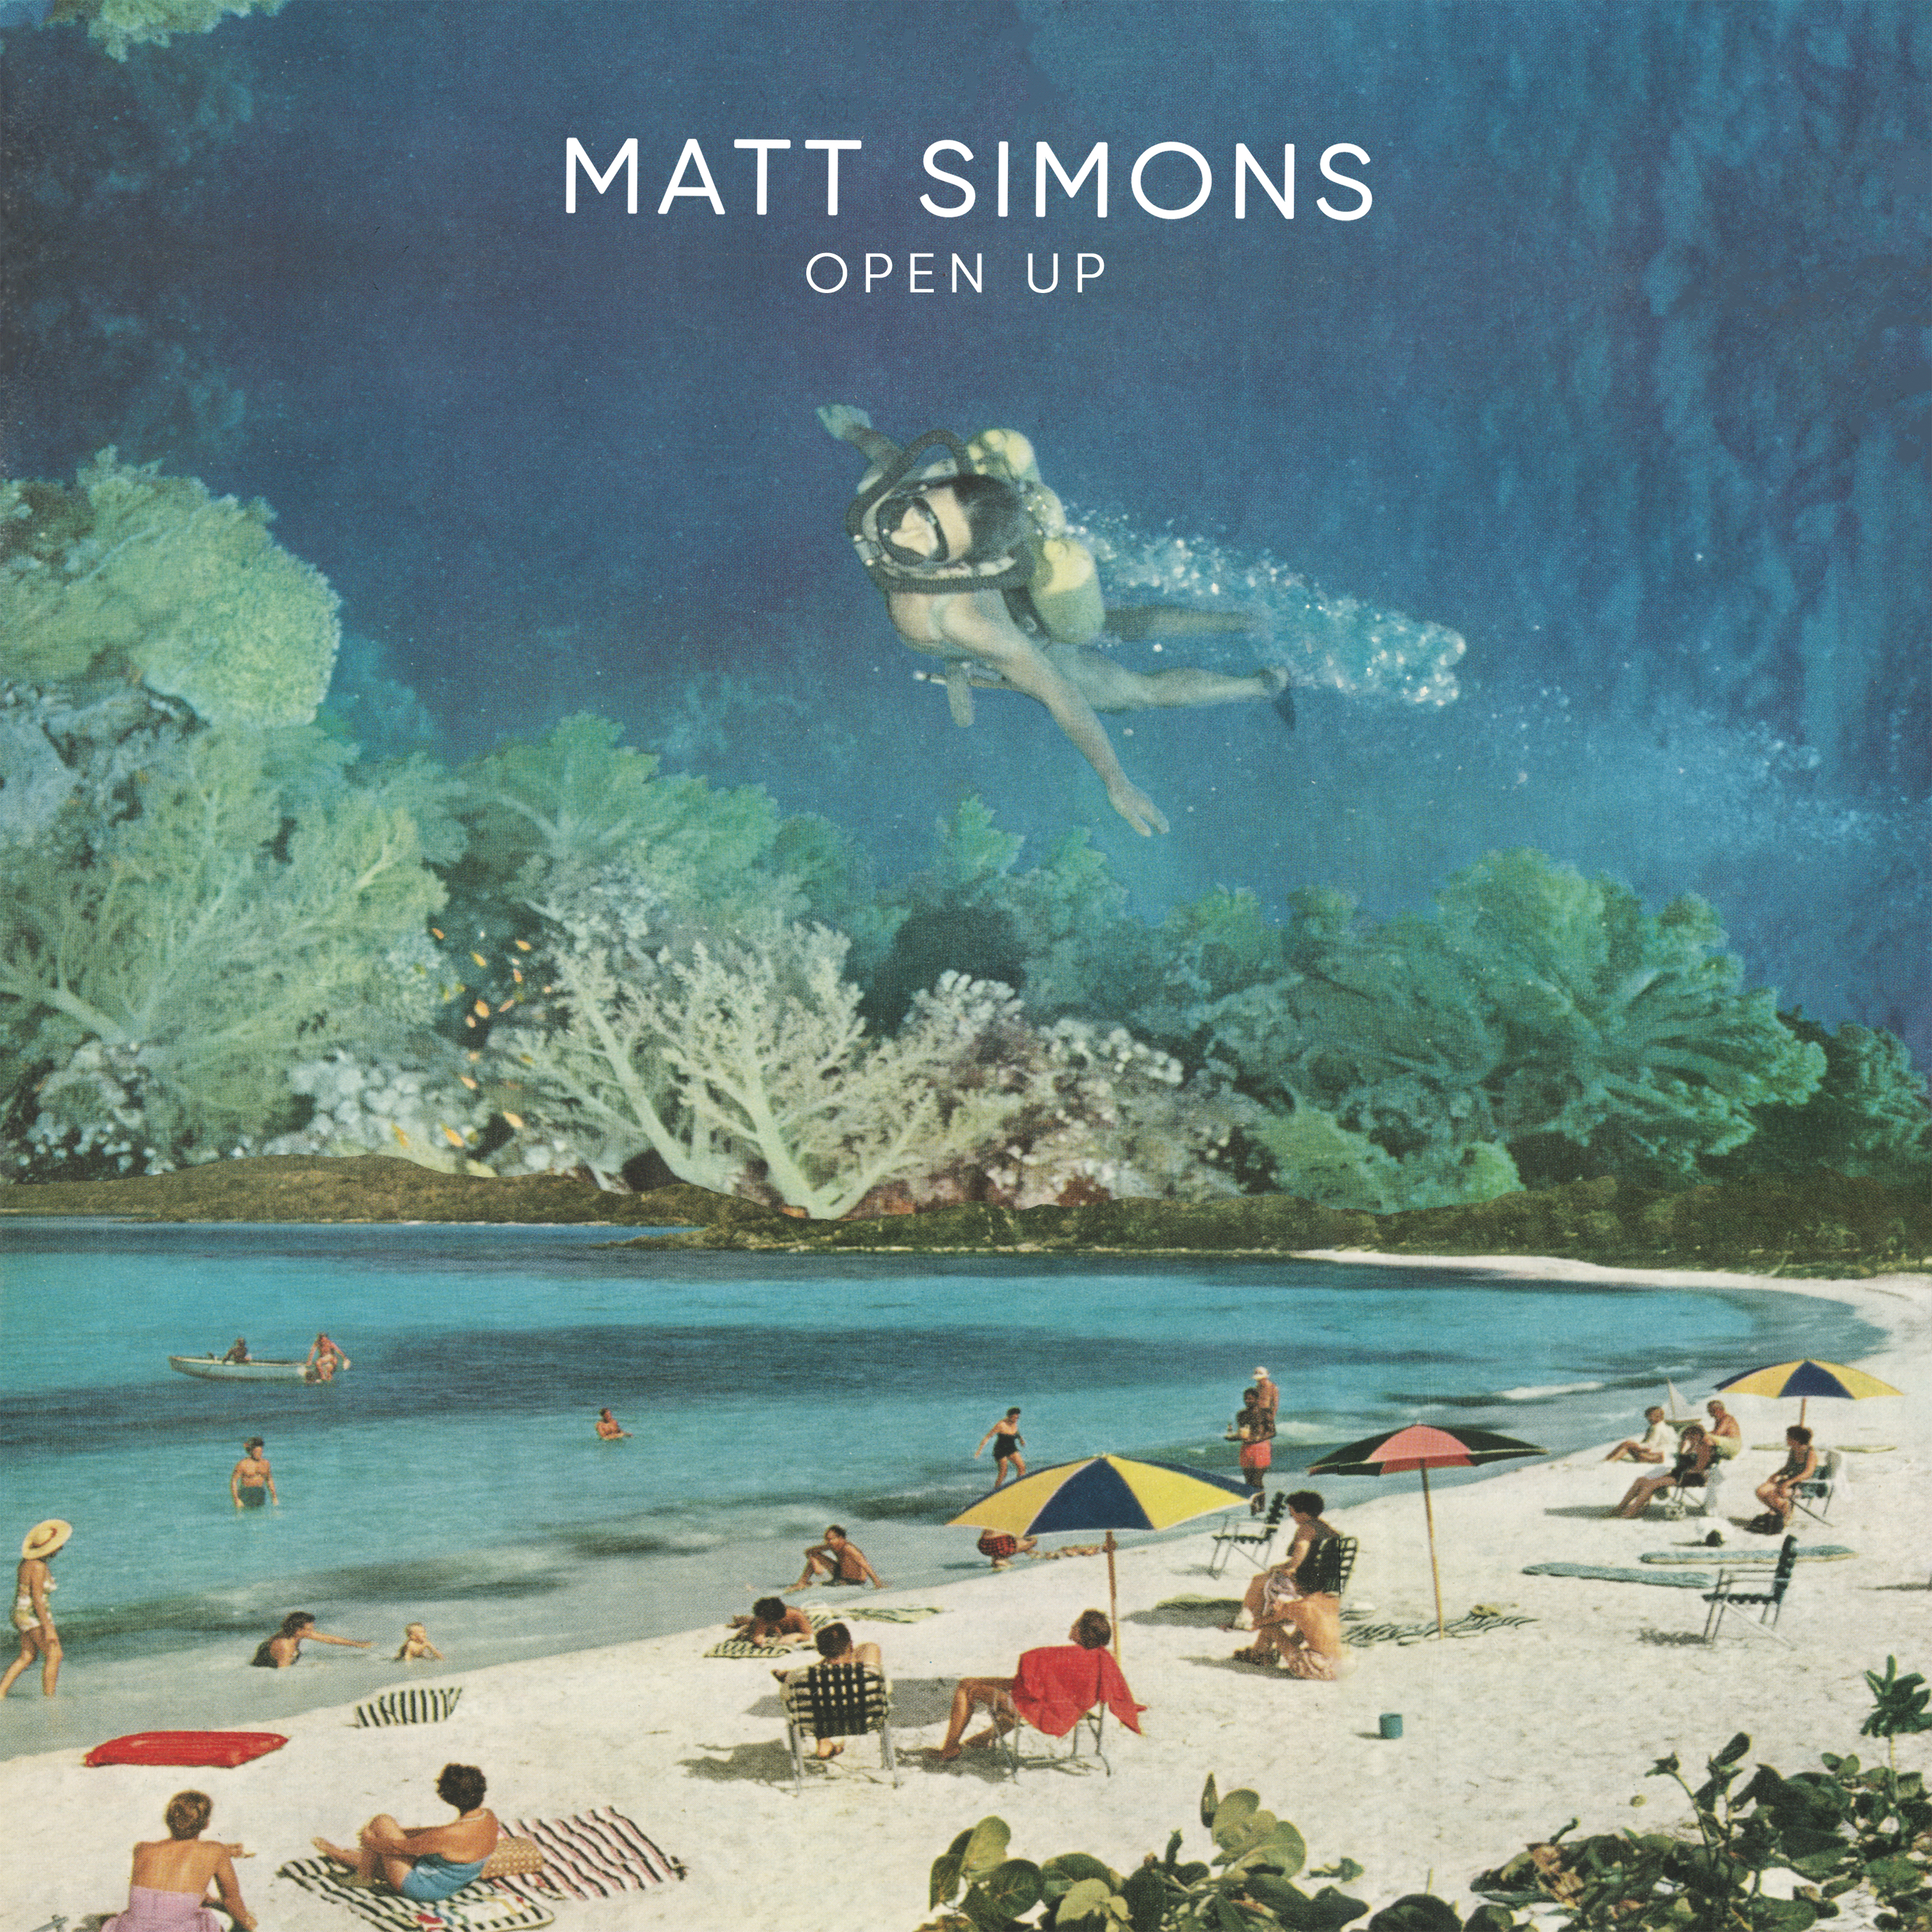 Matt Simons - Open Up (feat Lola Dubini)